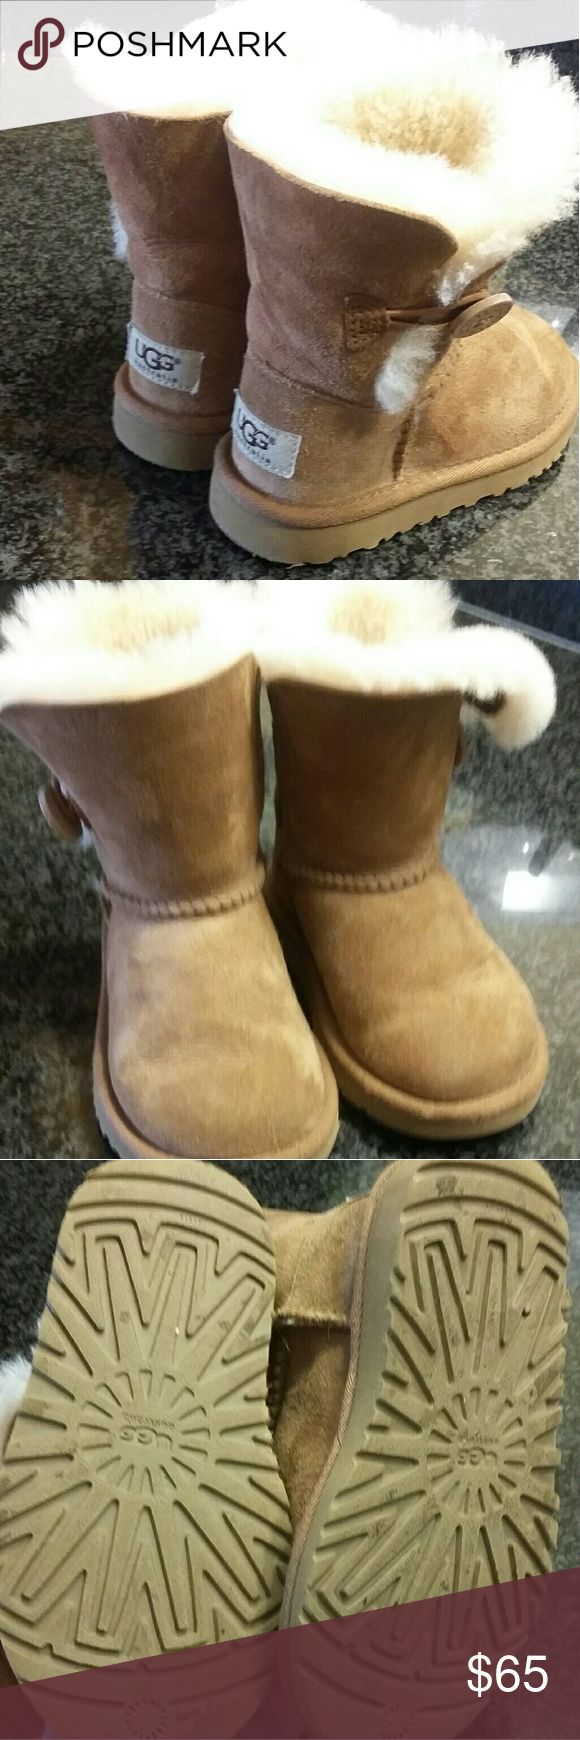 Ugg little girls boots Great used condition. This is a size nine in little girls ugg boots. One small spot as shown in last pic. Buttons also show some wear as pictured.minimal wear on toes UGG Shoes Boots